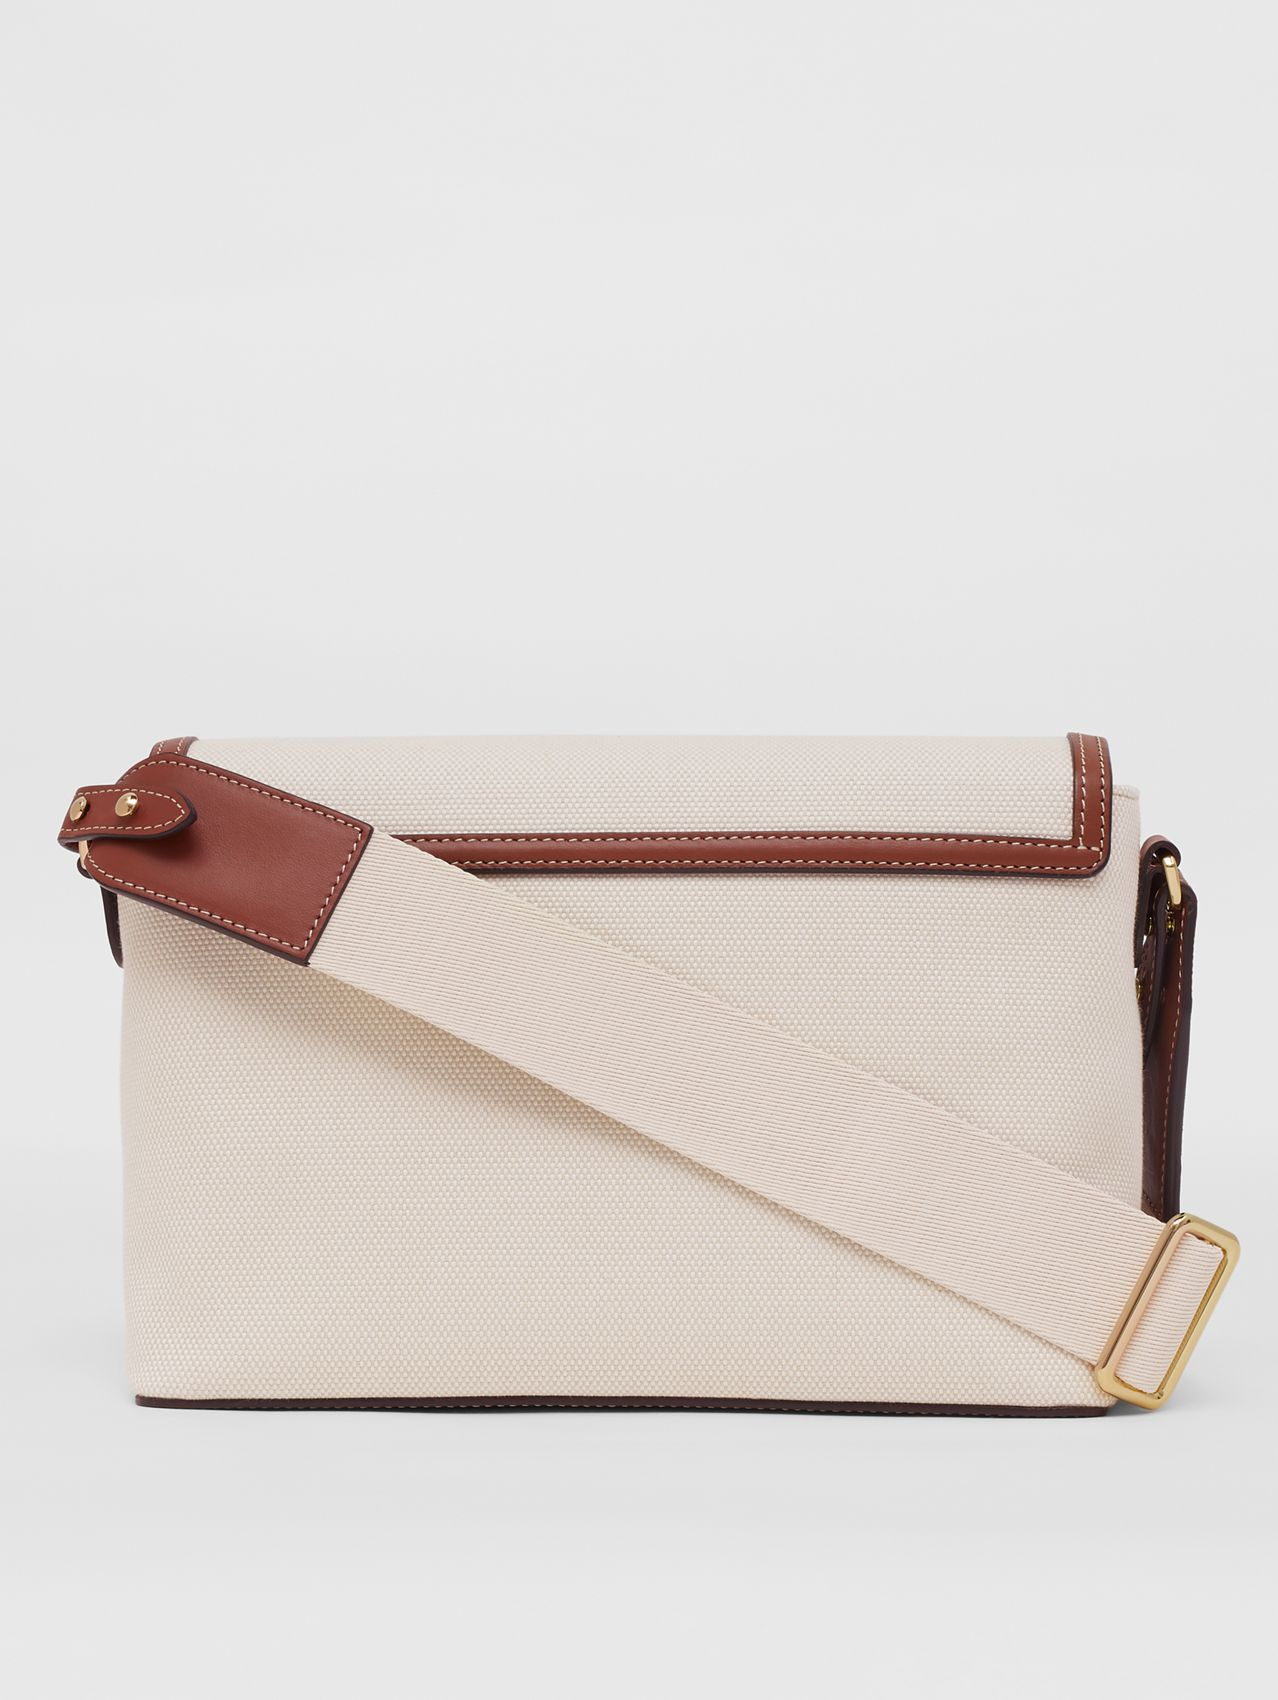 Horseferry Print Canvas Note Crossbody Bag in Natural/tan